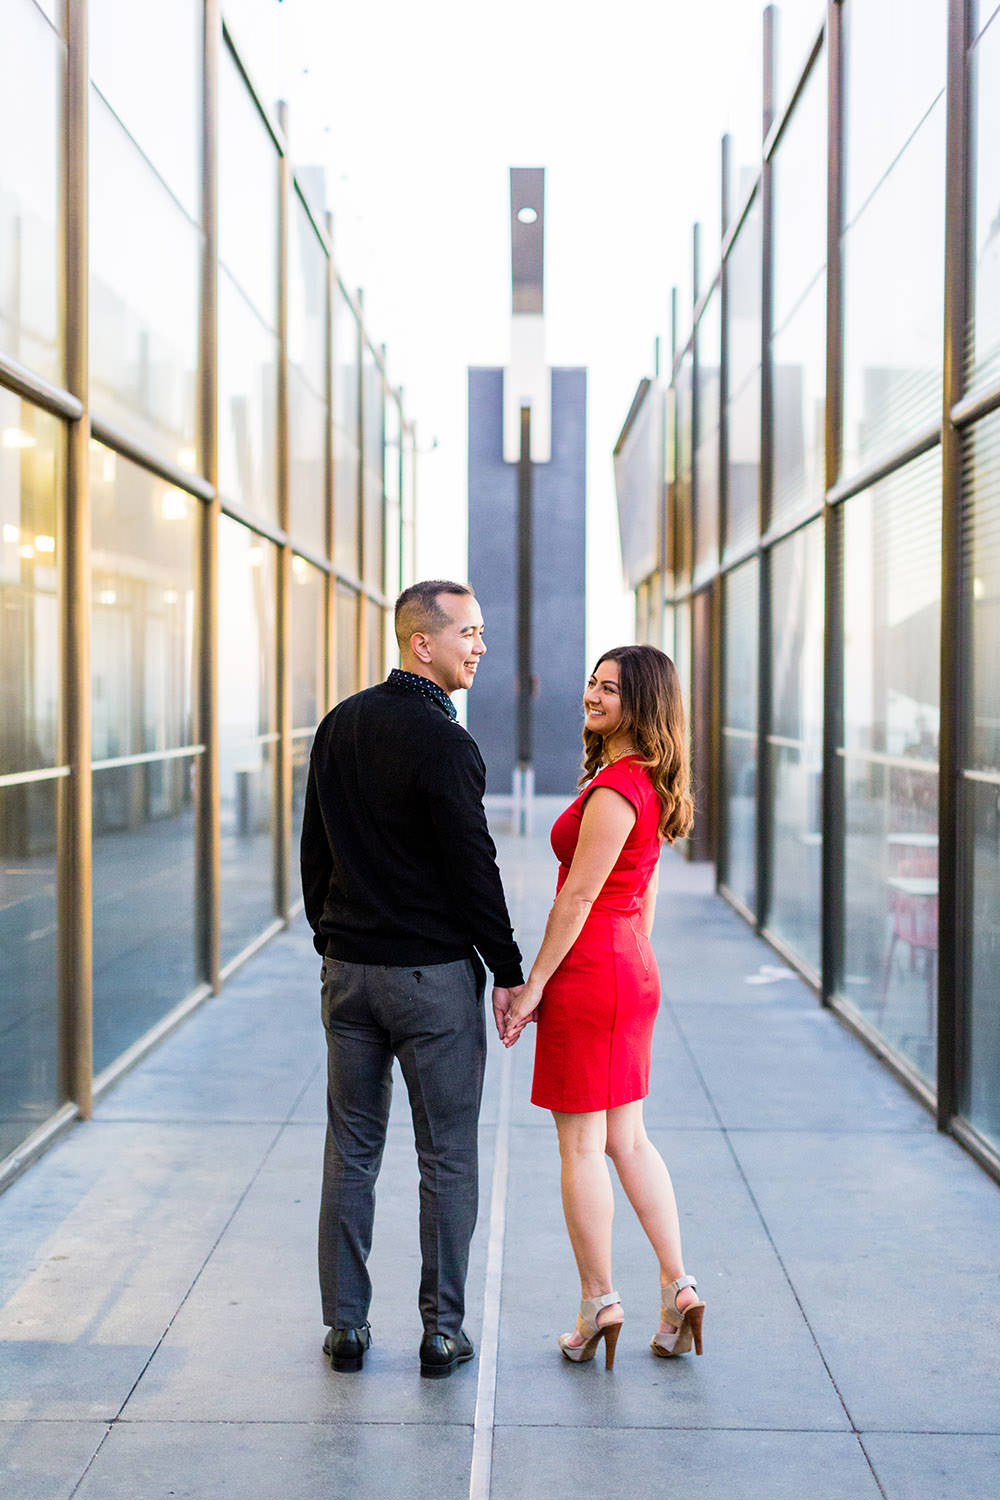 Engagement Session at Griffith Observatory in Los Angeles, CA